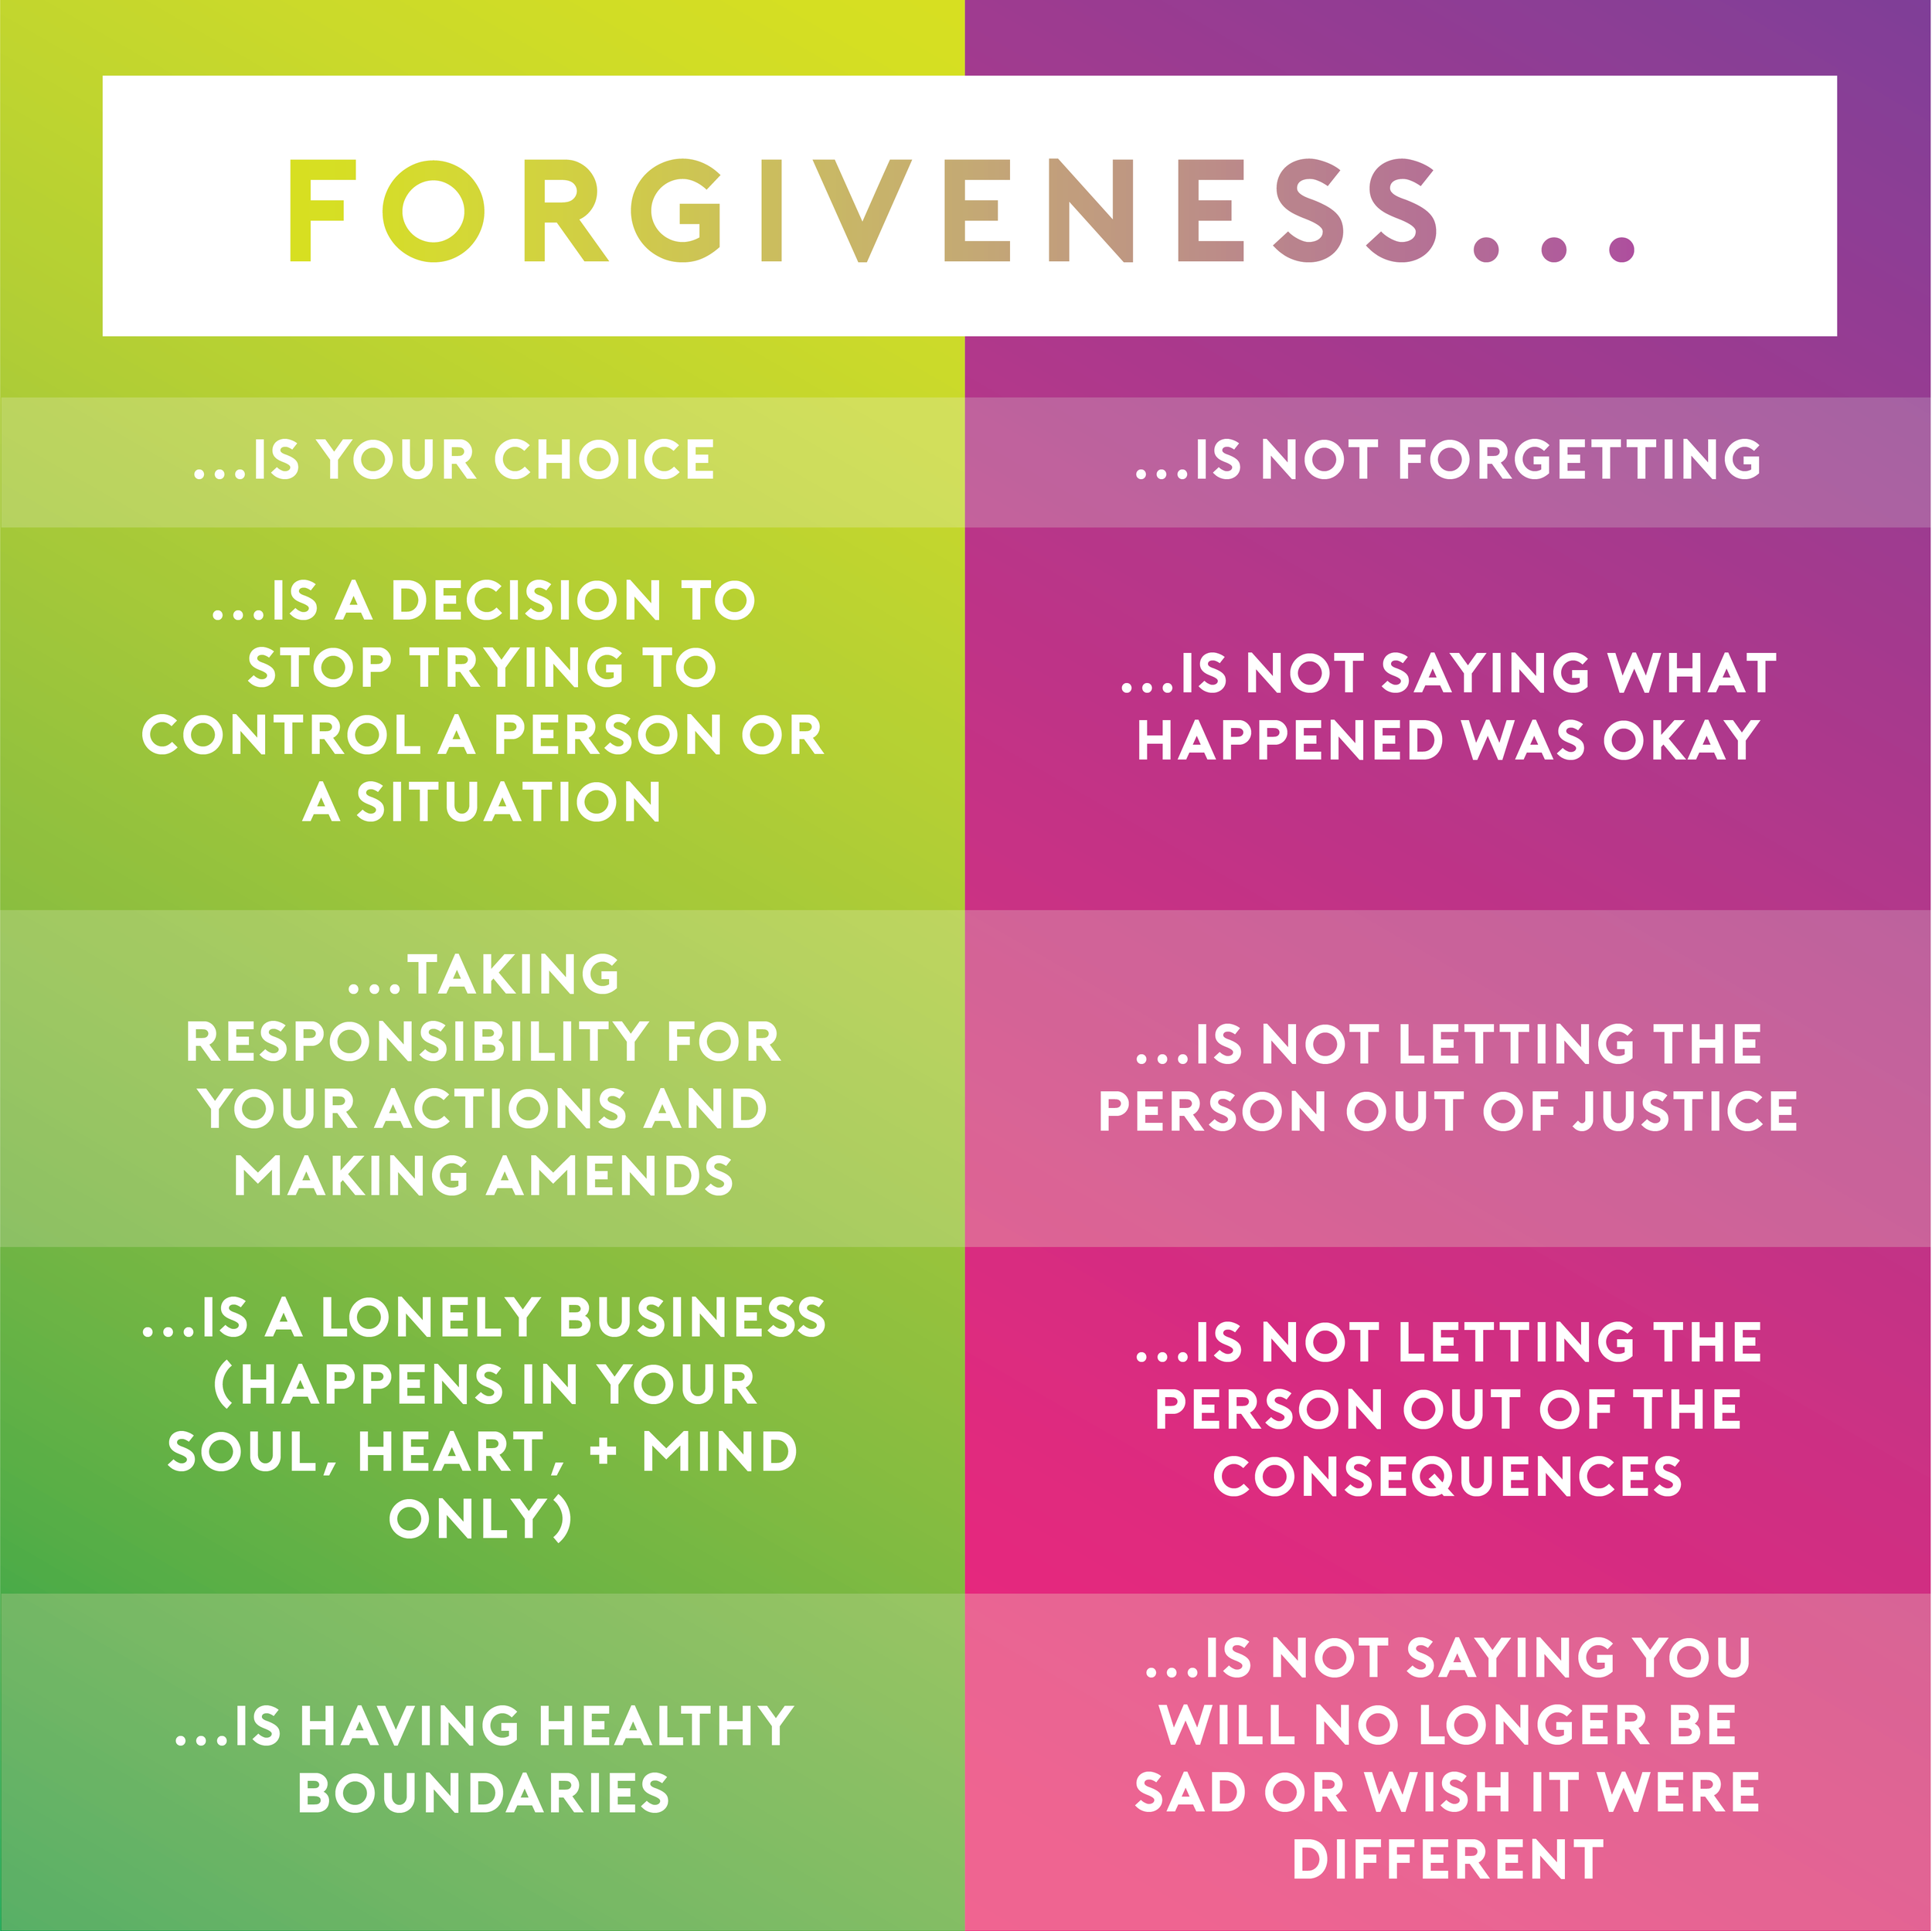 What Is Not Forgiveness